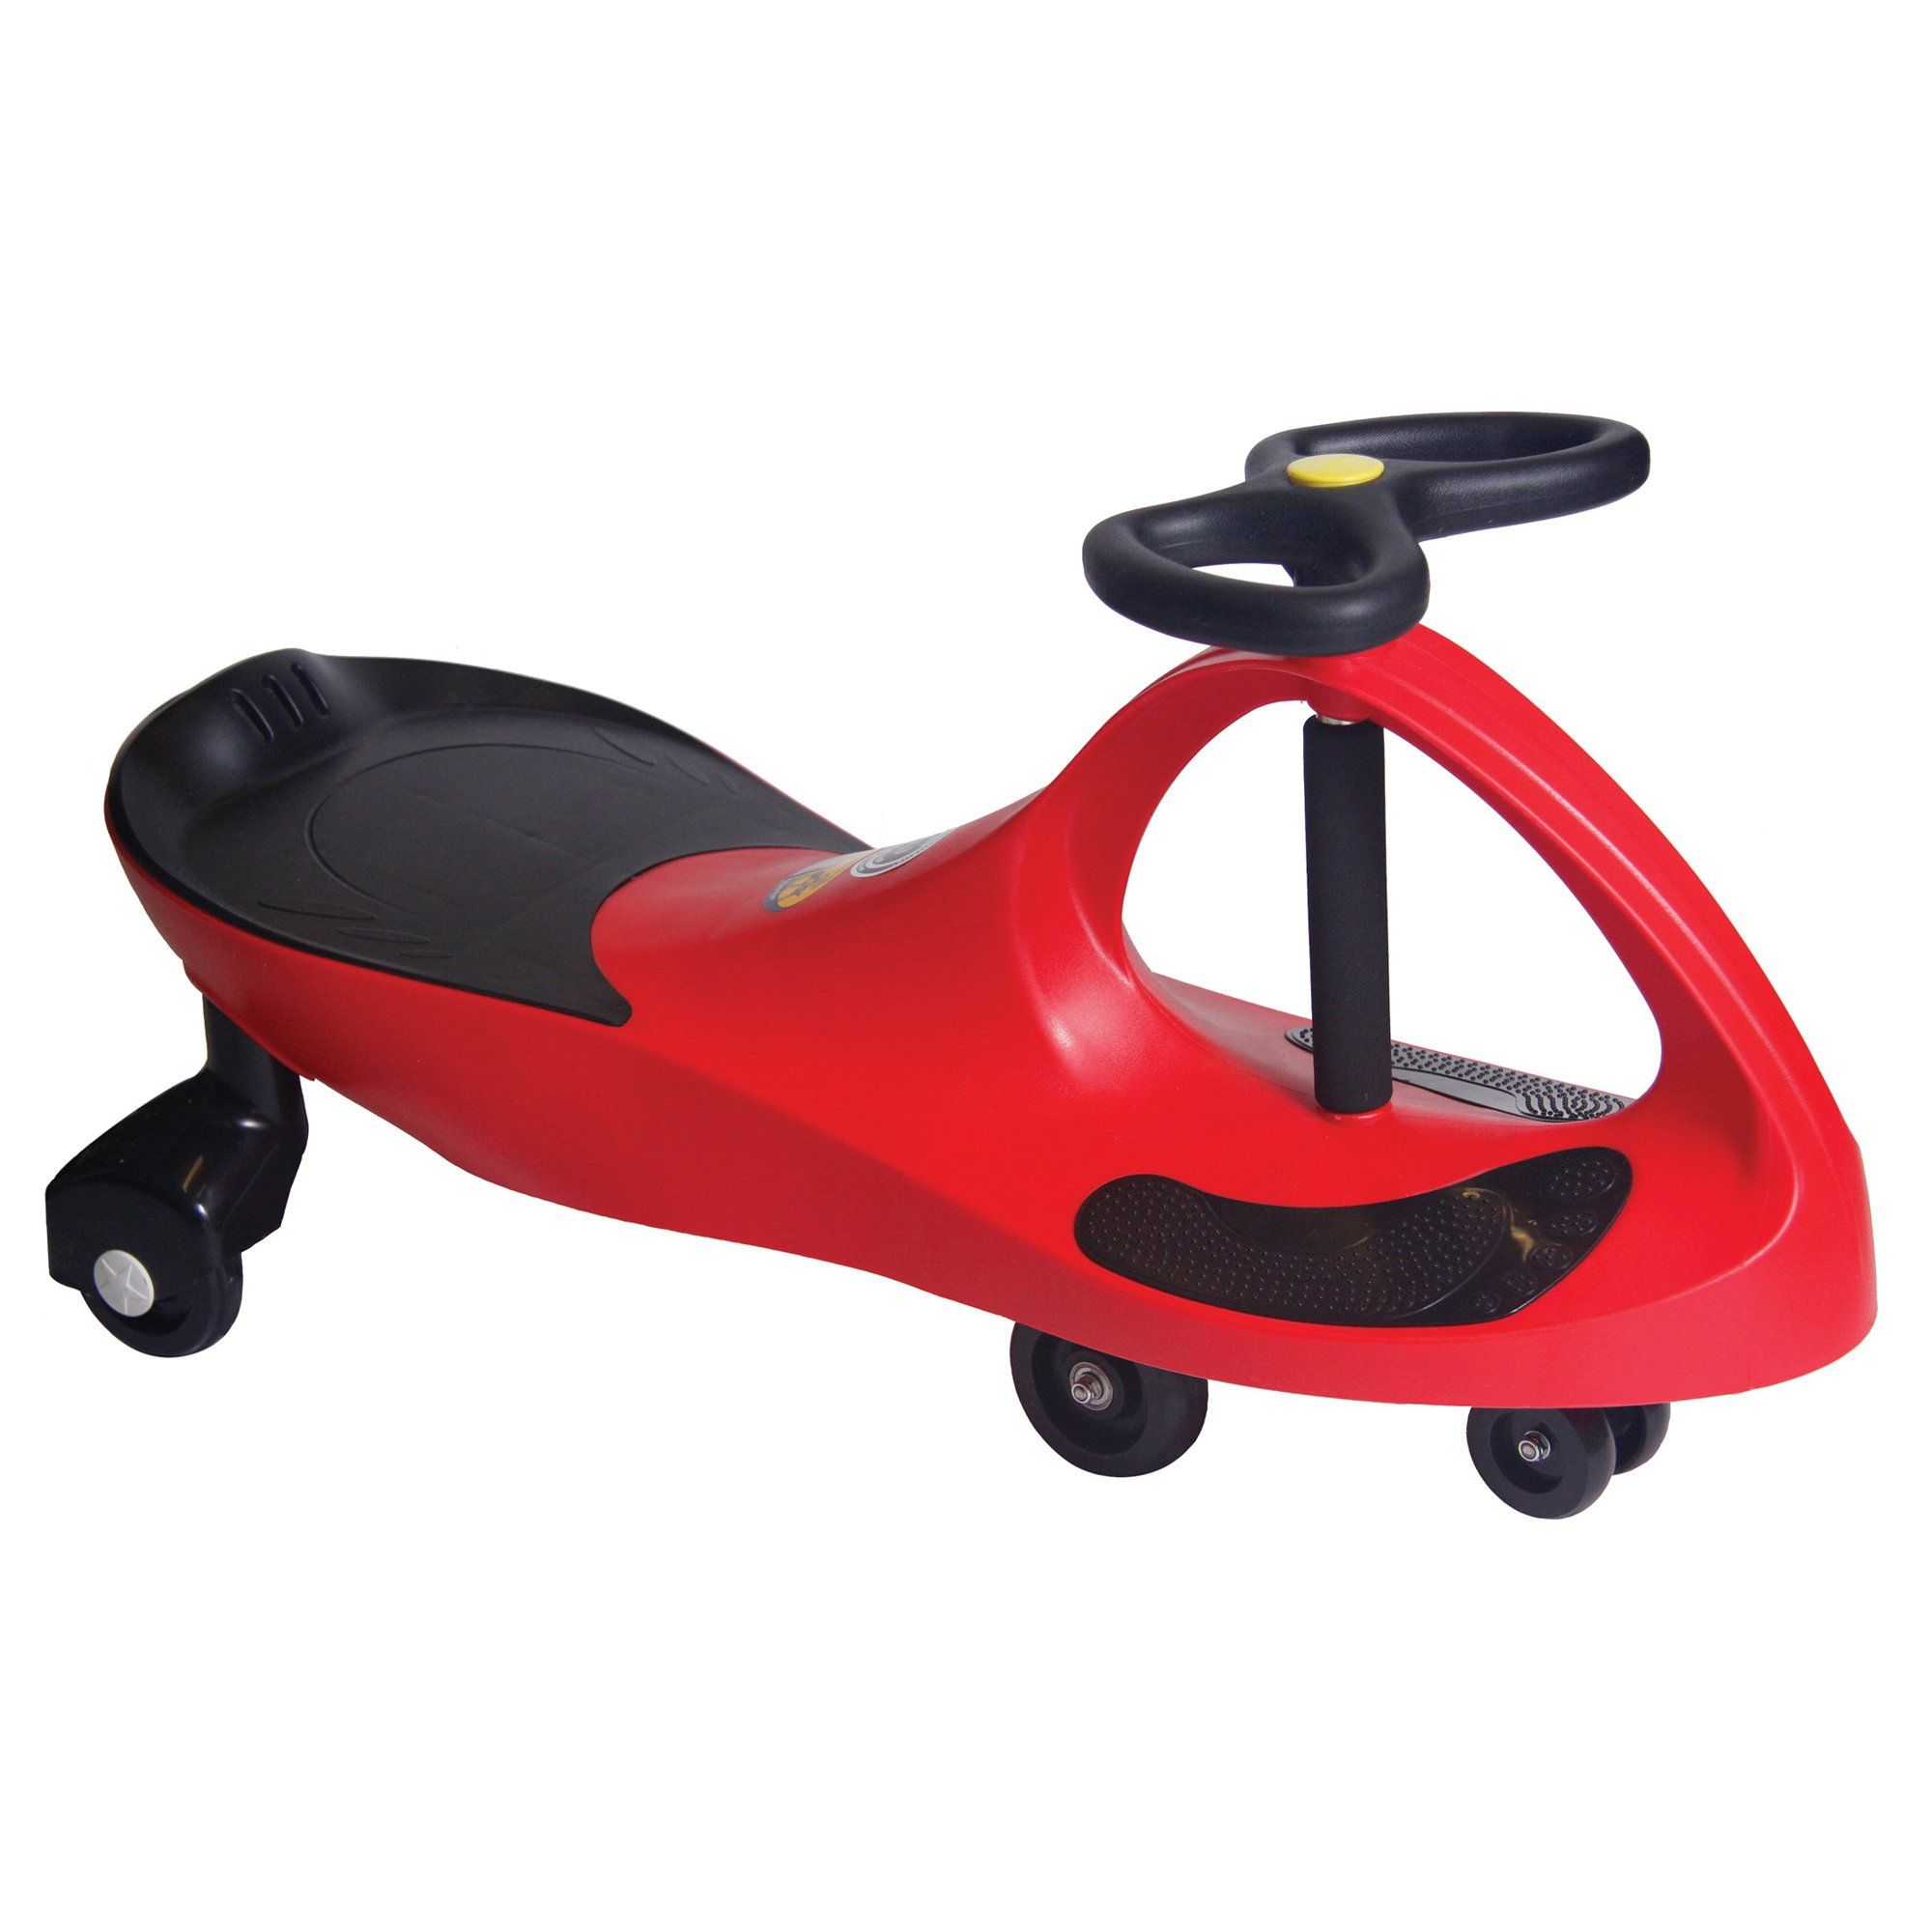 The Original PlasmaCar by PlaSmart - Red - Ride On Toy, Ages 3 yrs and Up, No batteries, gears, or pedals, Twist, Turn, Wiggle for endless fun by PlasmaCar